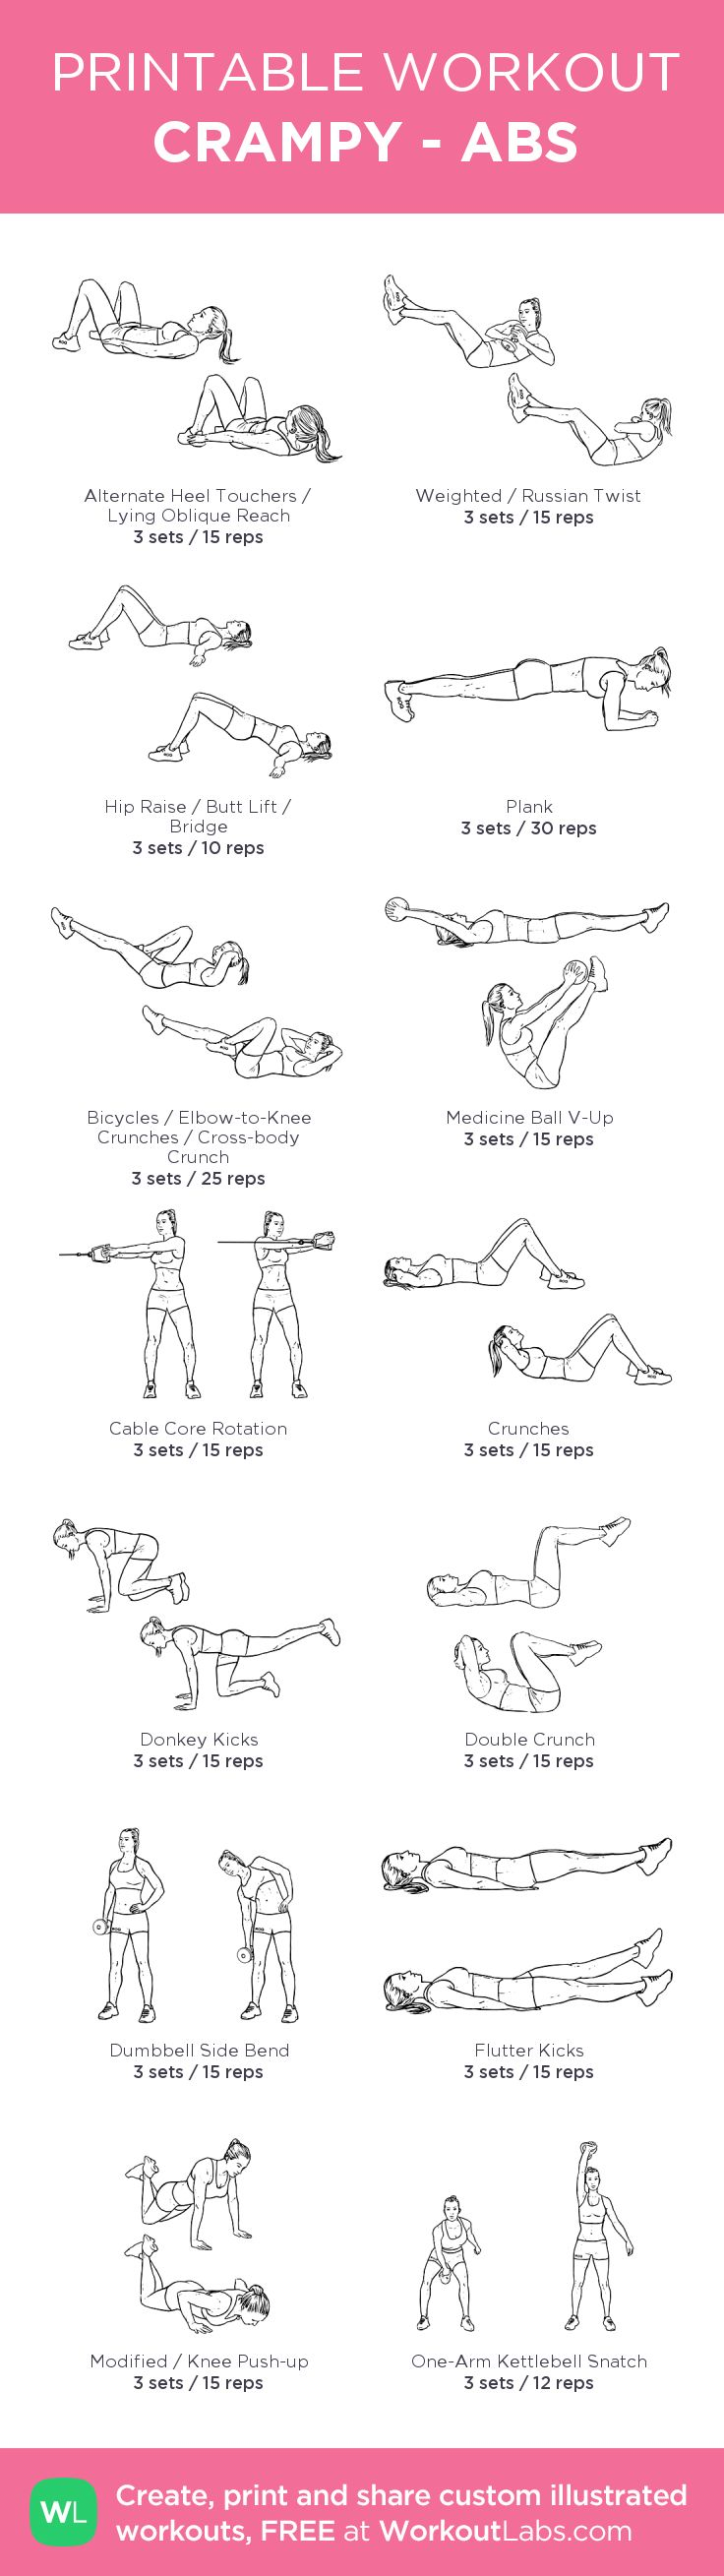 CRAMPY - ABS: my visual workout created at WorkoutLabs.com • Click through to customize and download as a FREE PDF! #customworkout